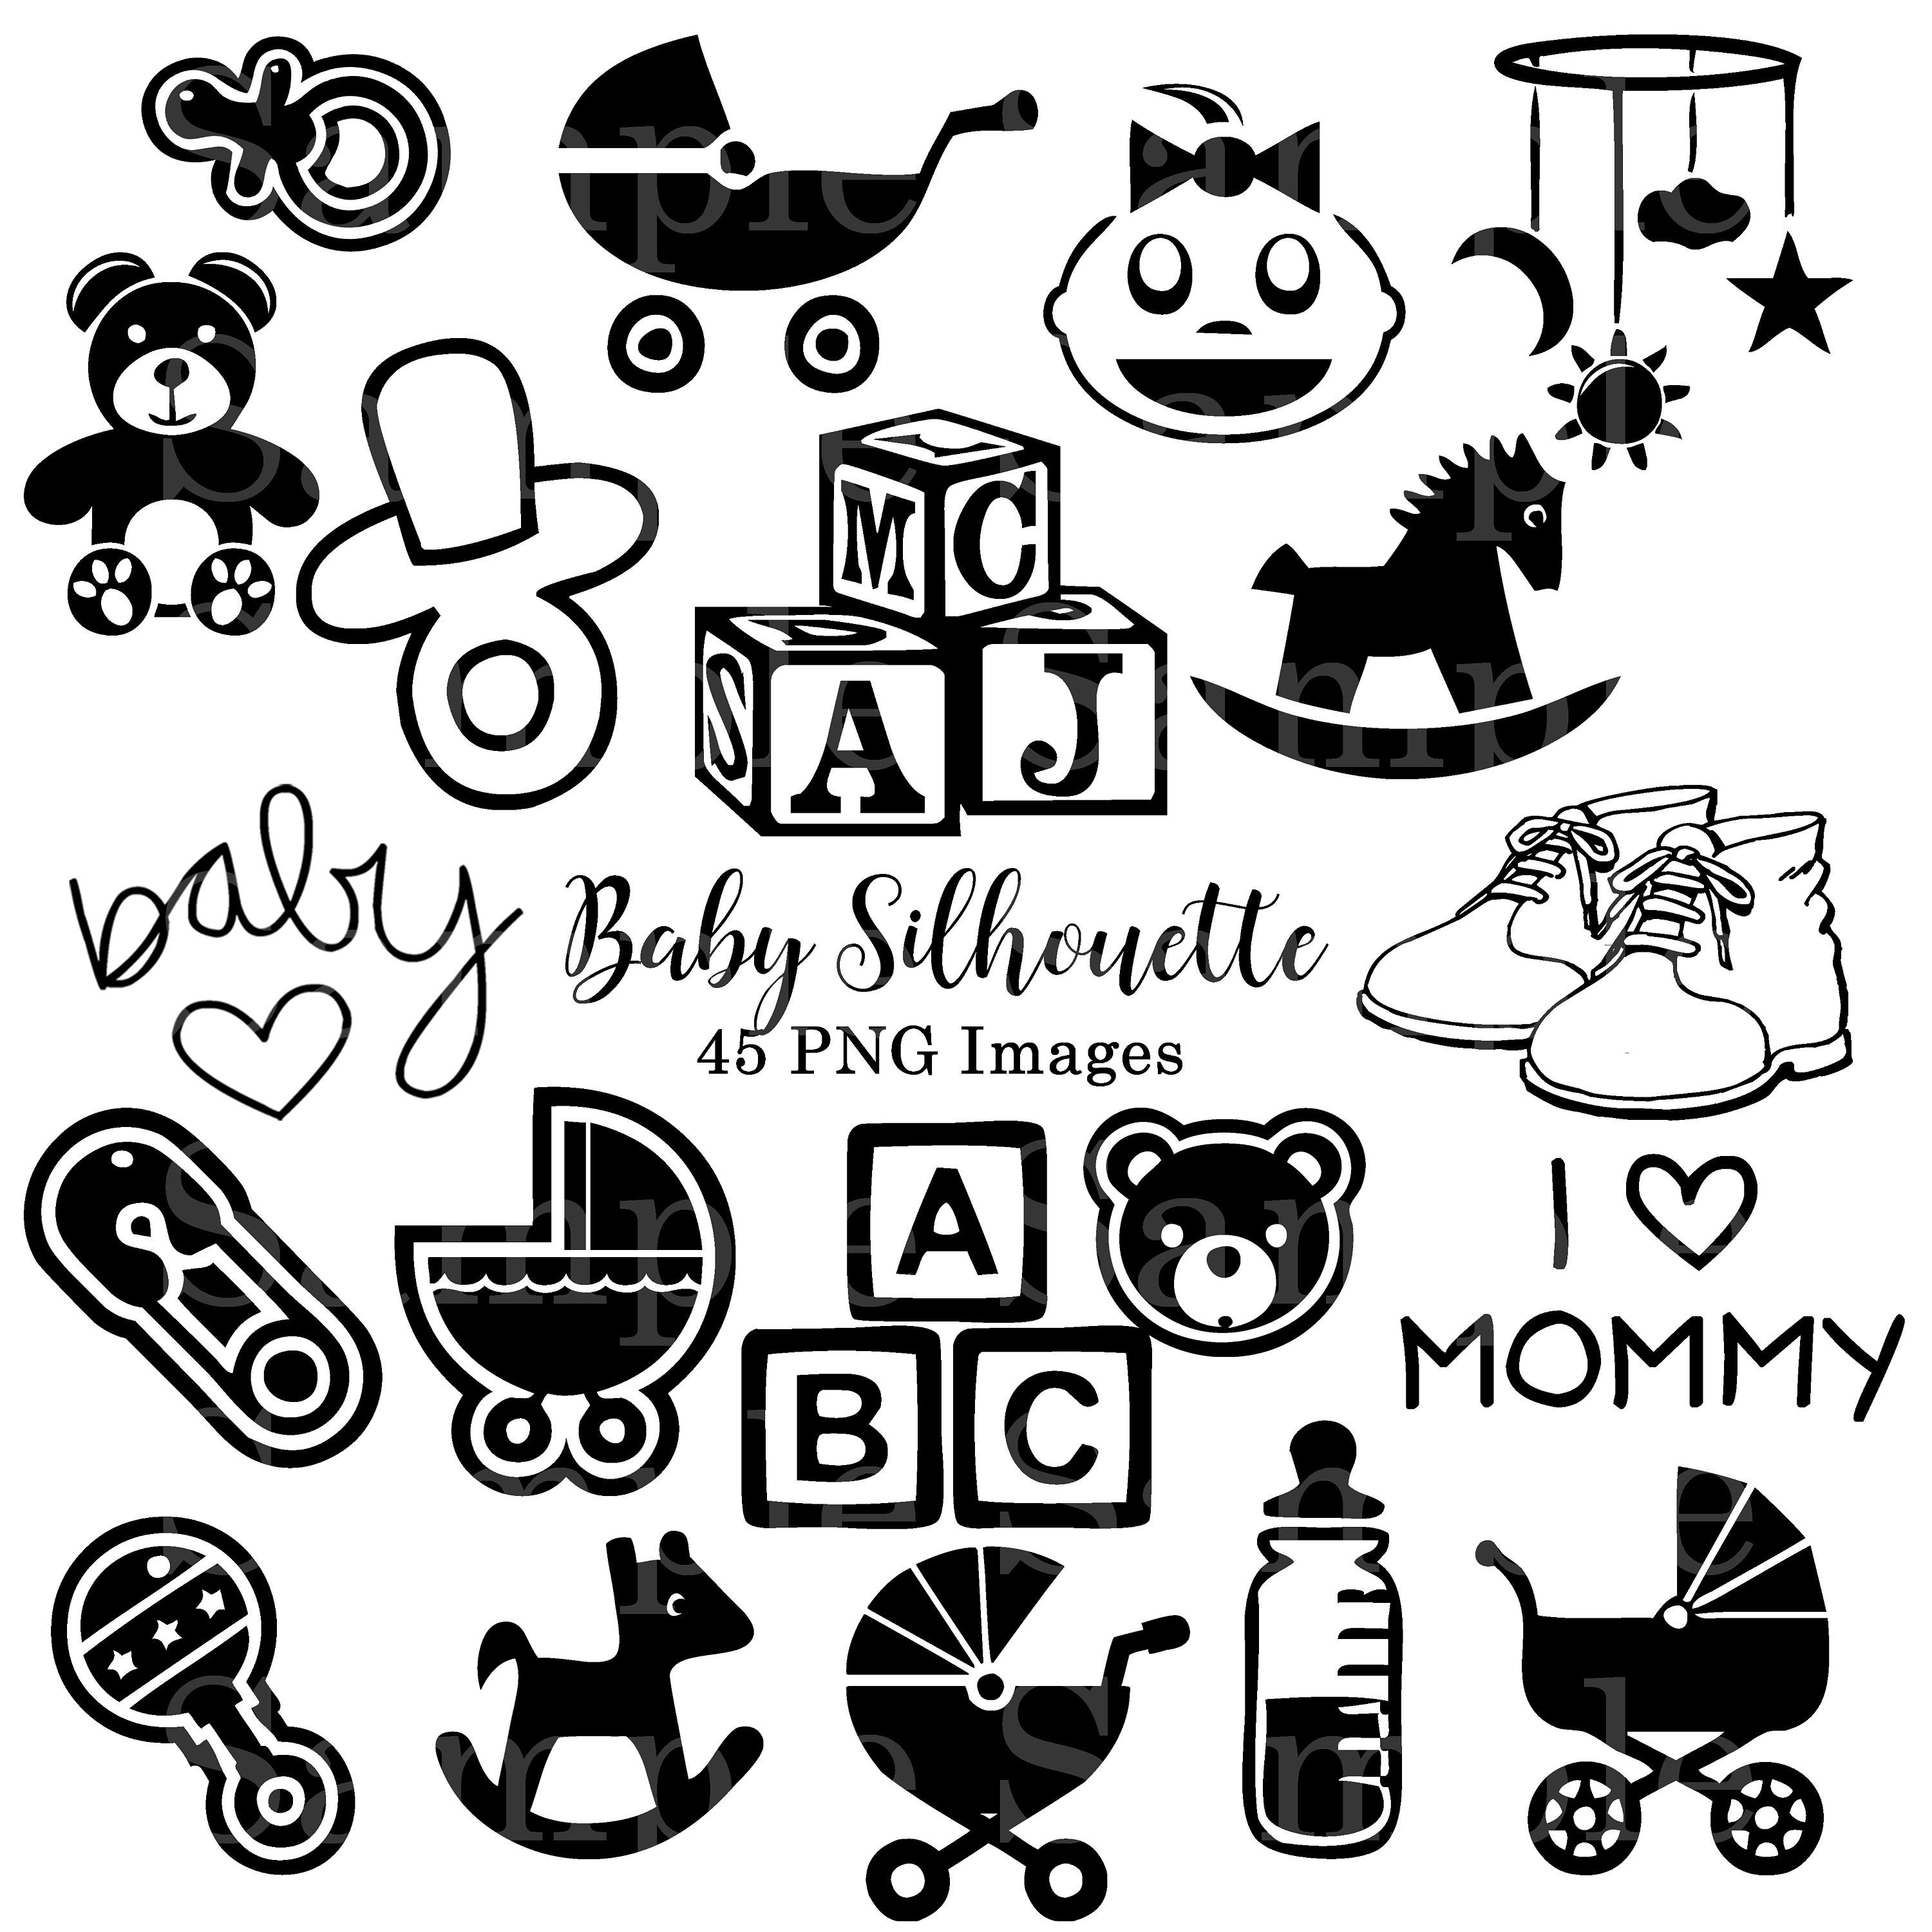 Baby Black and White Silhouette Clipart, Baby Shower, Invitations Clip Art,  Digital Download, Clip Art, Cricut Design Shape 45 Images.